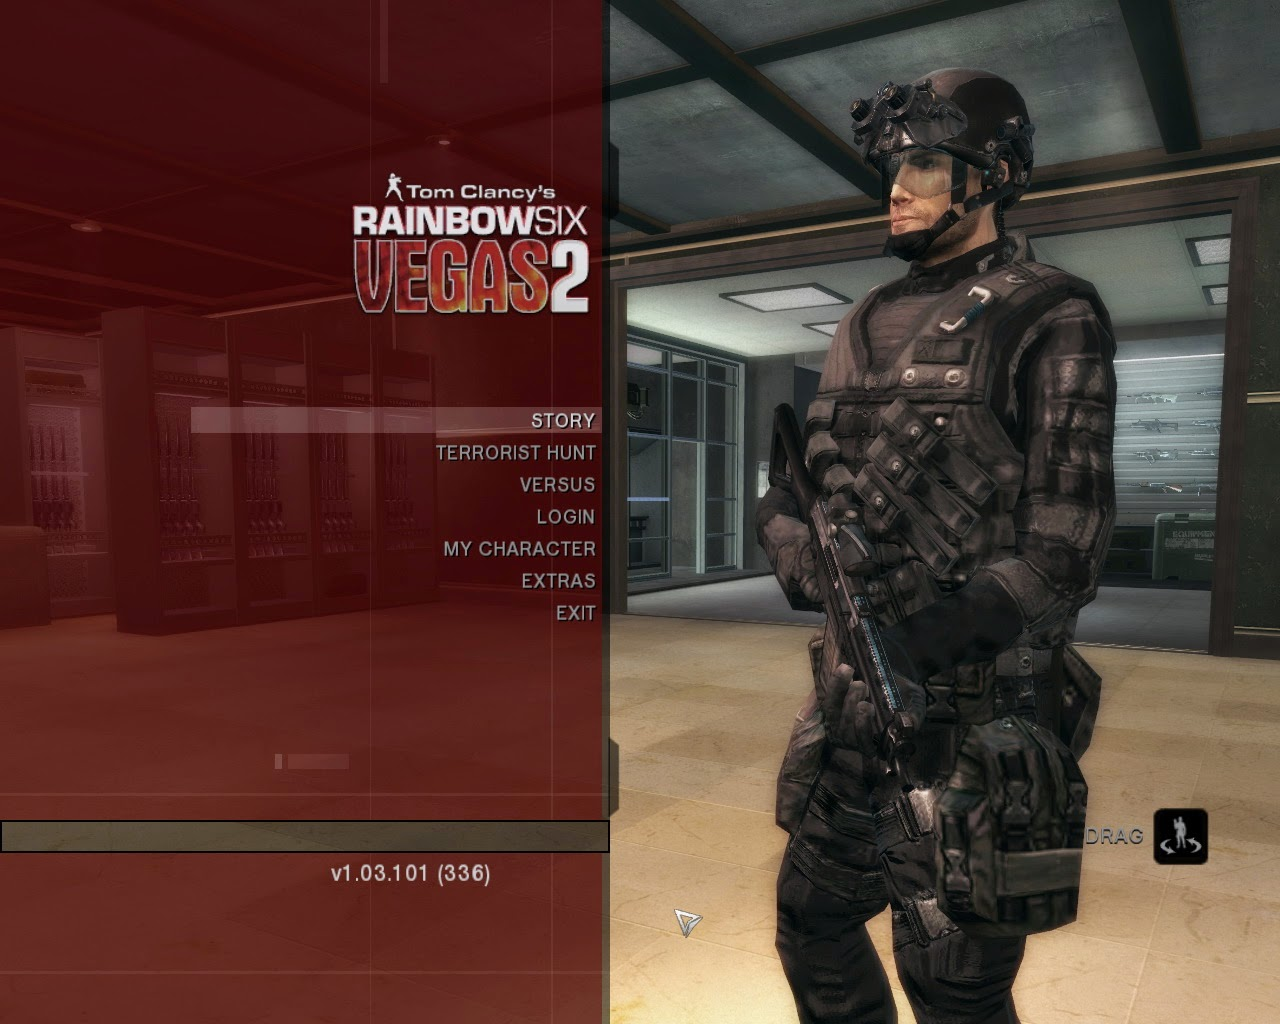 Download Tom Clancy's Rainbow Six Vegas 2 Game PC Full Version